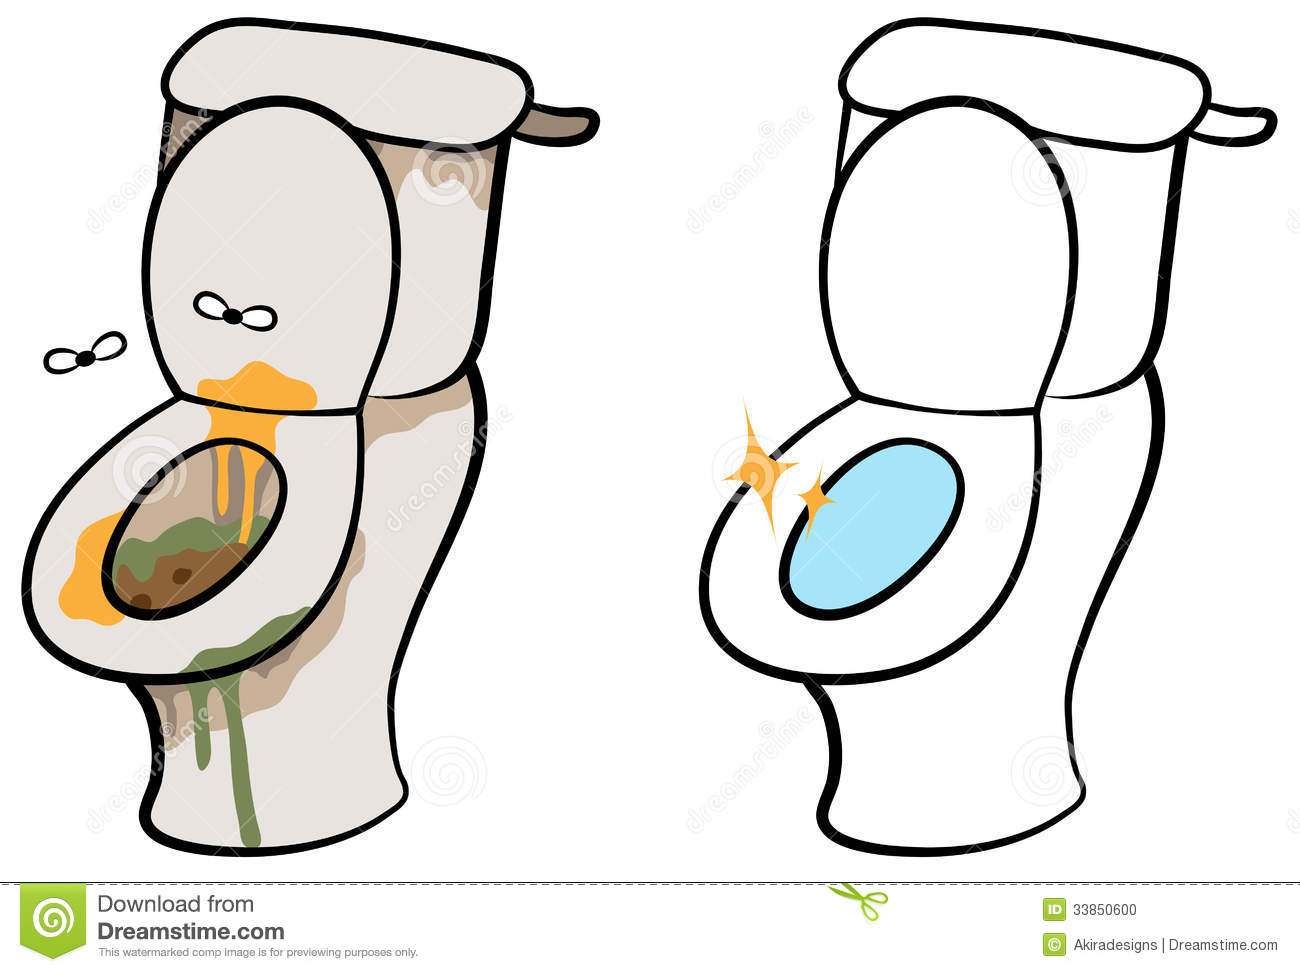 toilet seat clip art black and white – clipart download